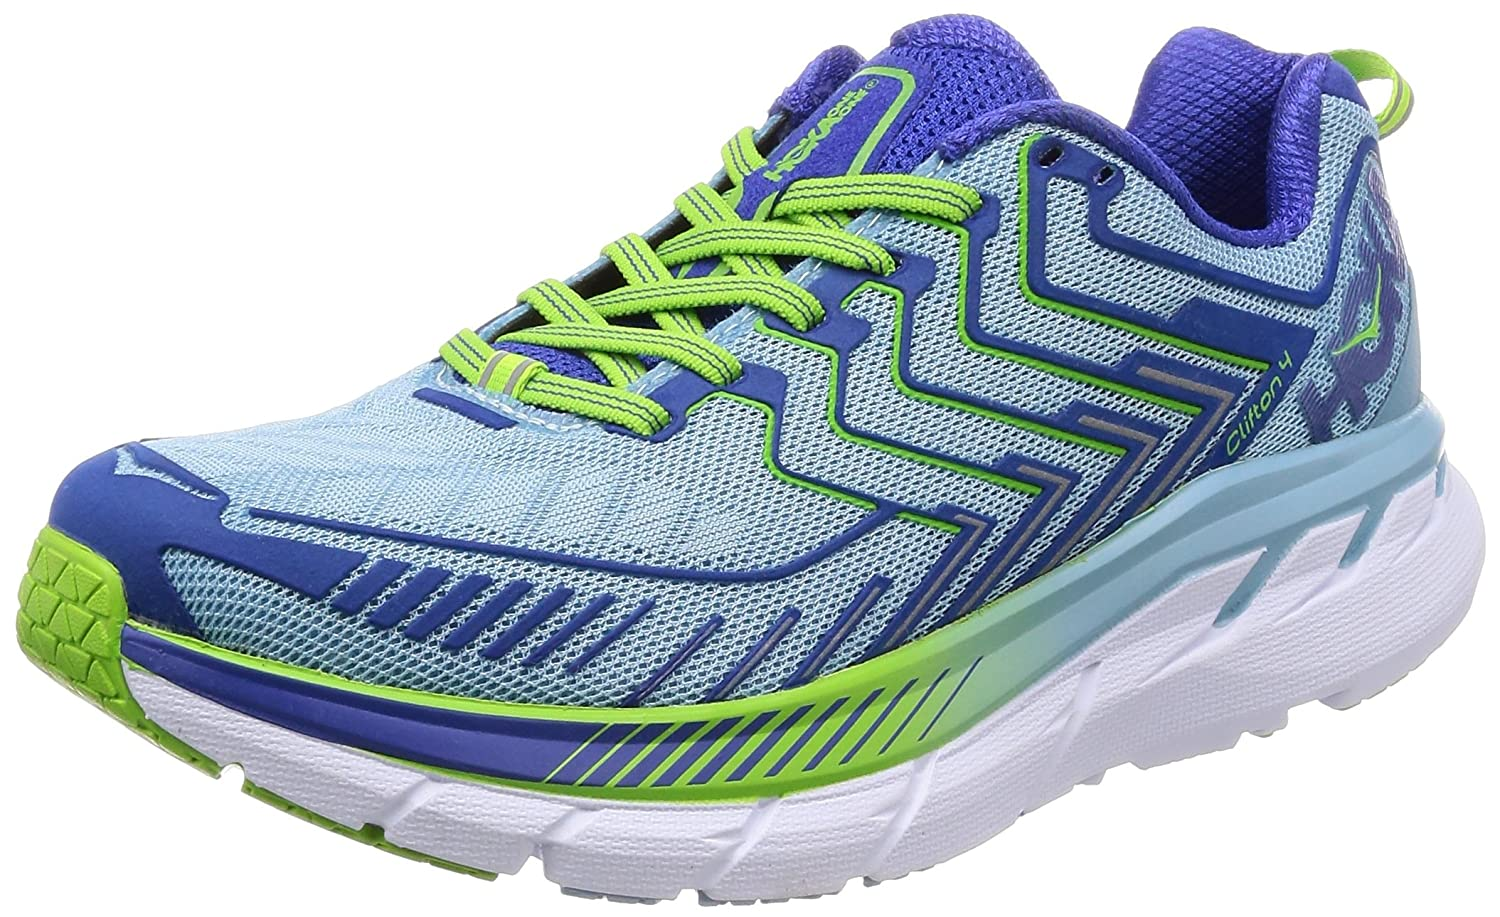 HOKA ONE ONE Women's Clifton 4 Running Shoe B0711TPSC2 10 B(M) US|Sky/Blue/Surf/the/Web